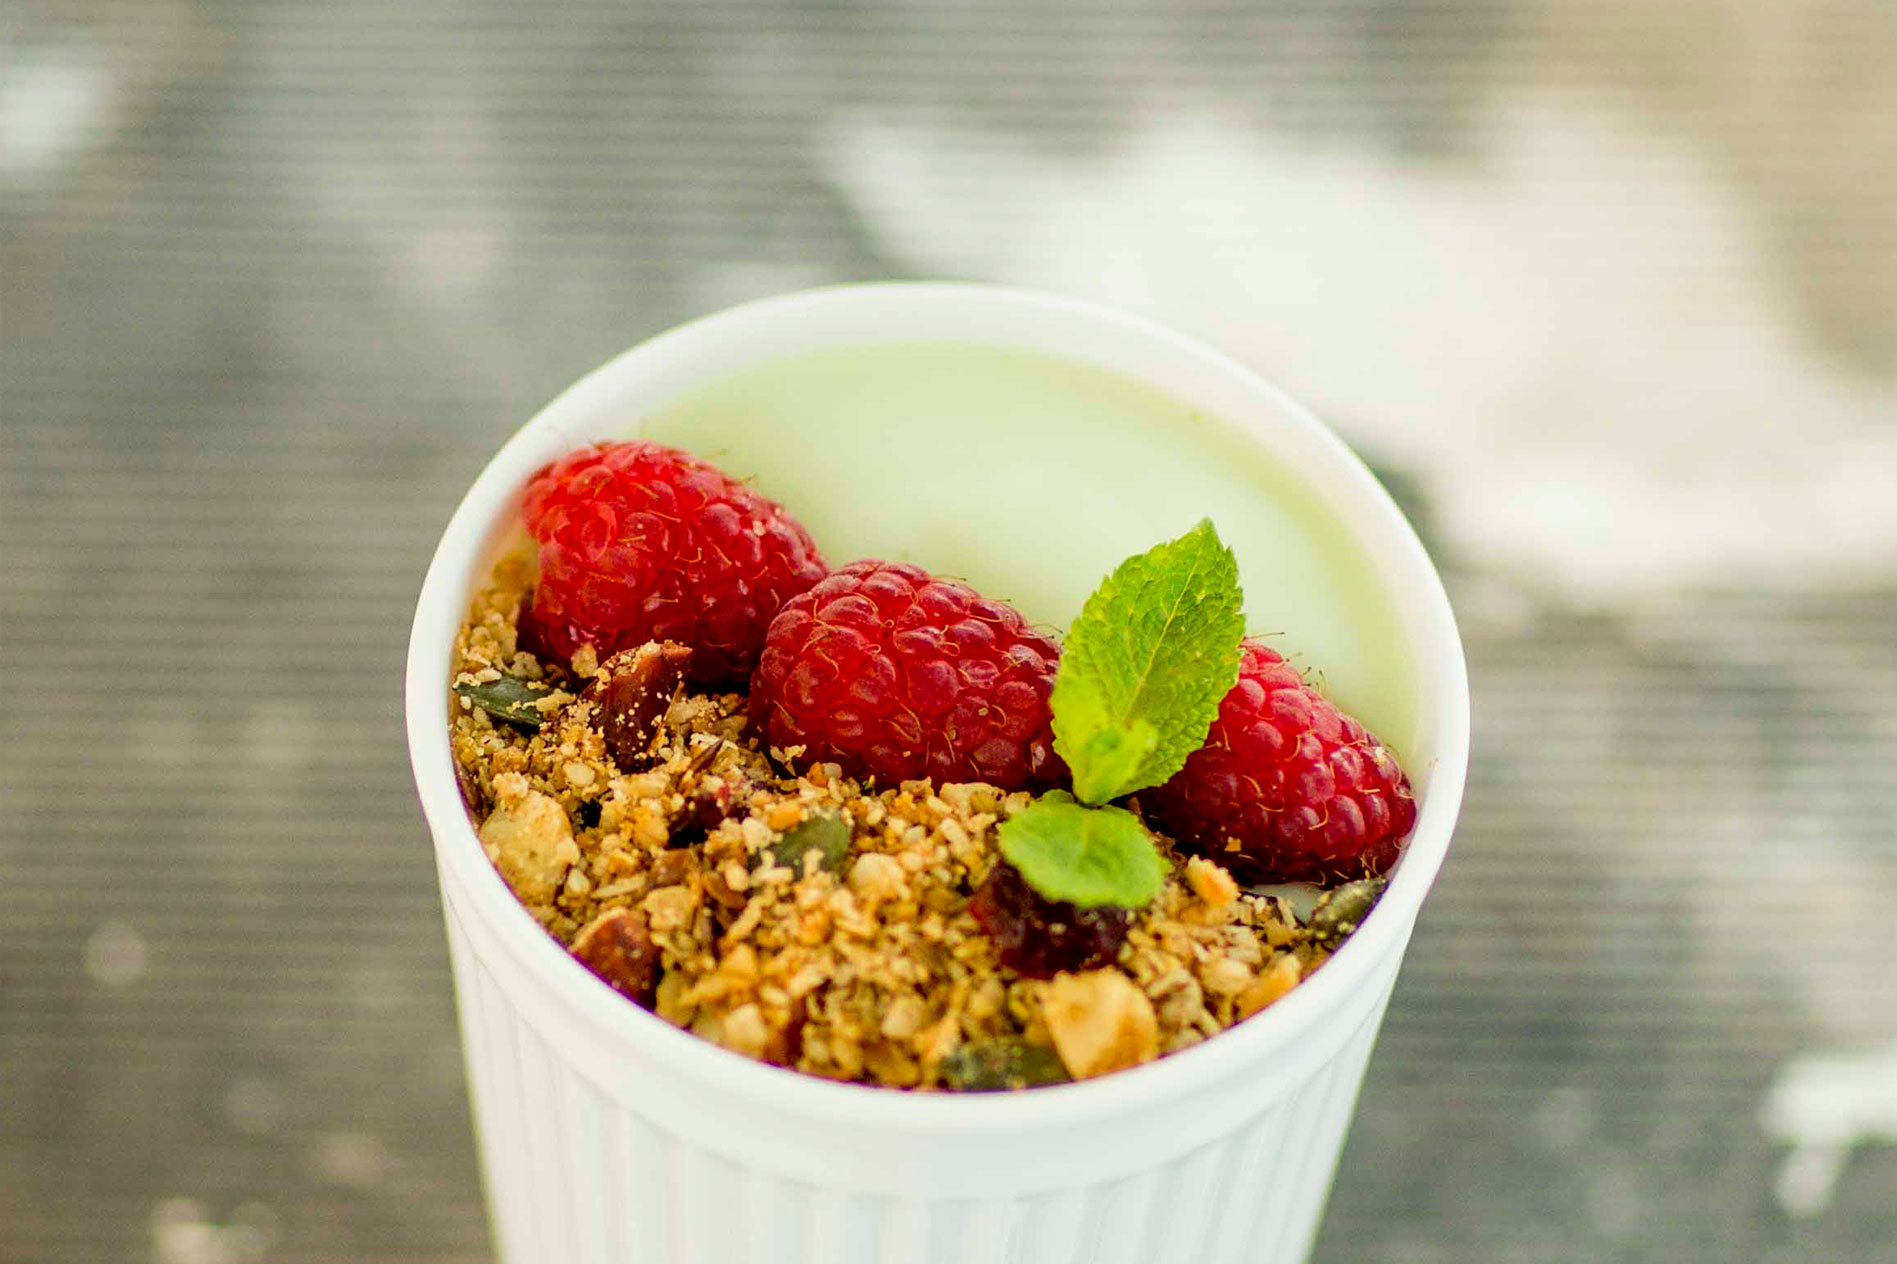 Avocado-smoothiebowl met granola